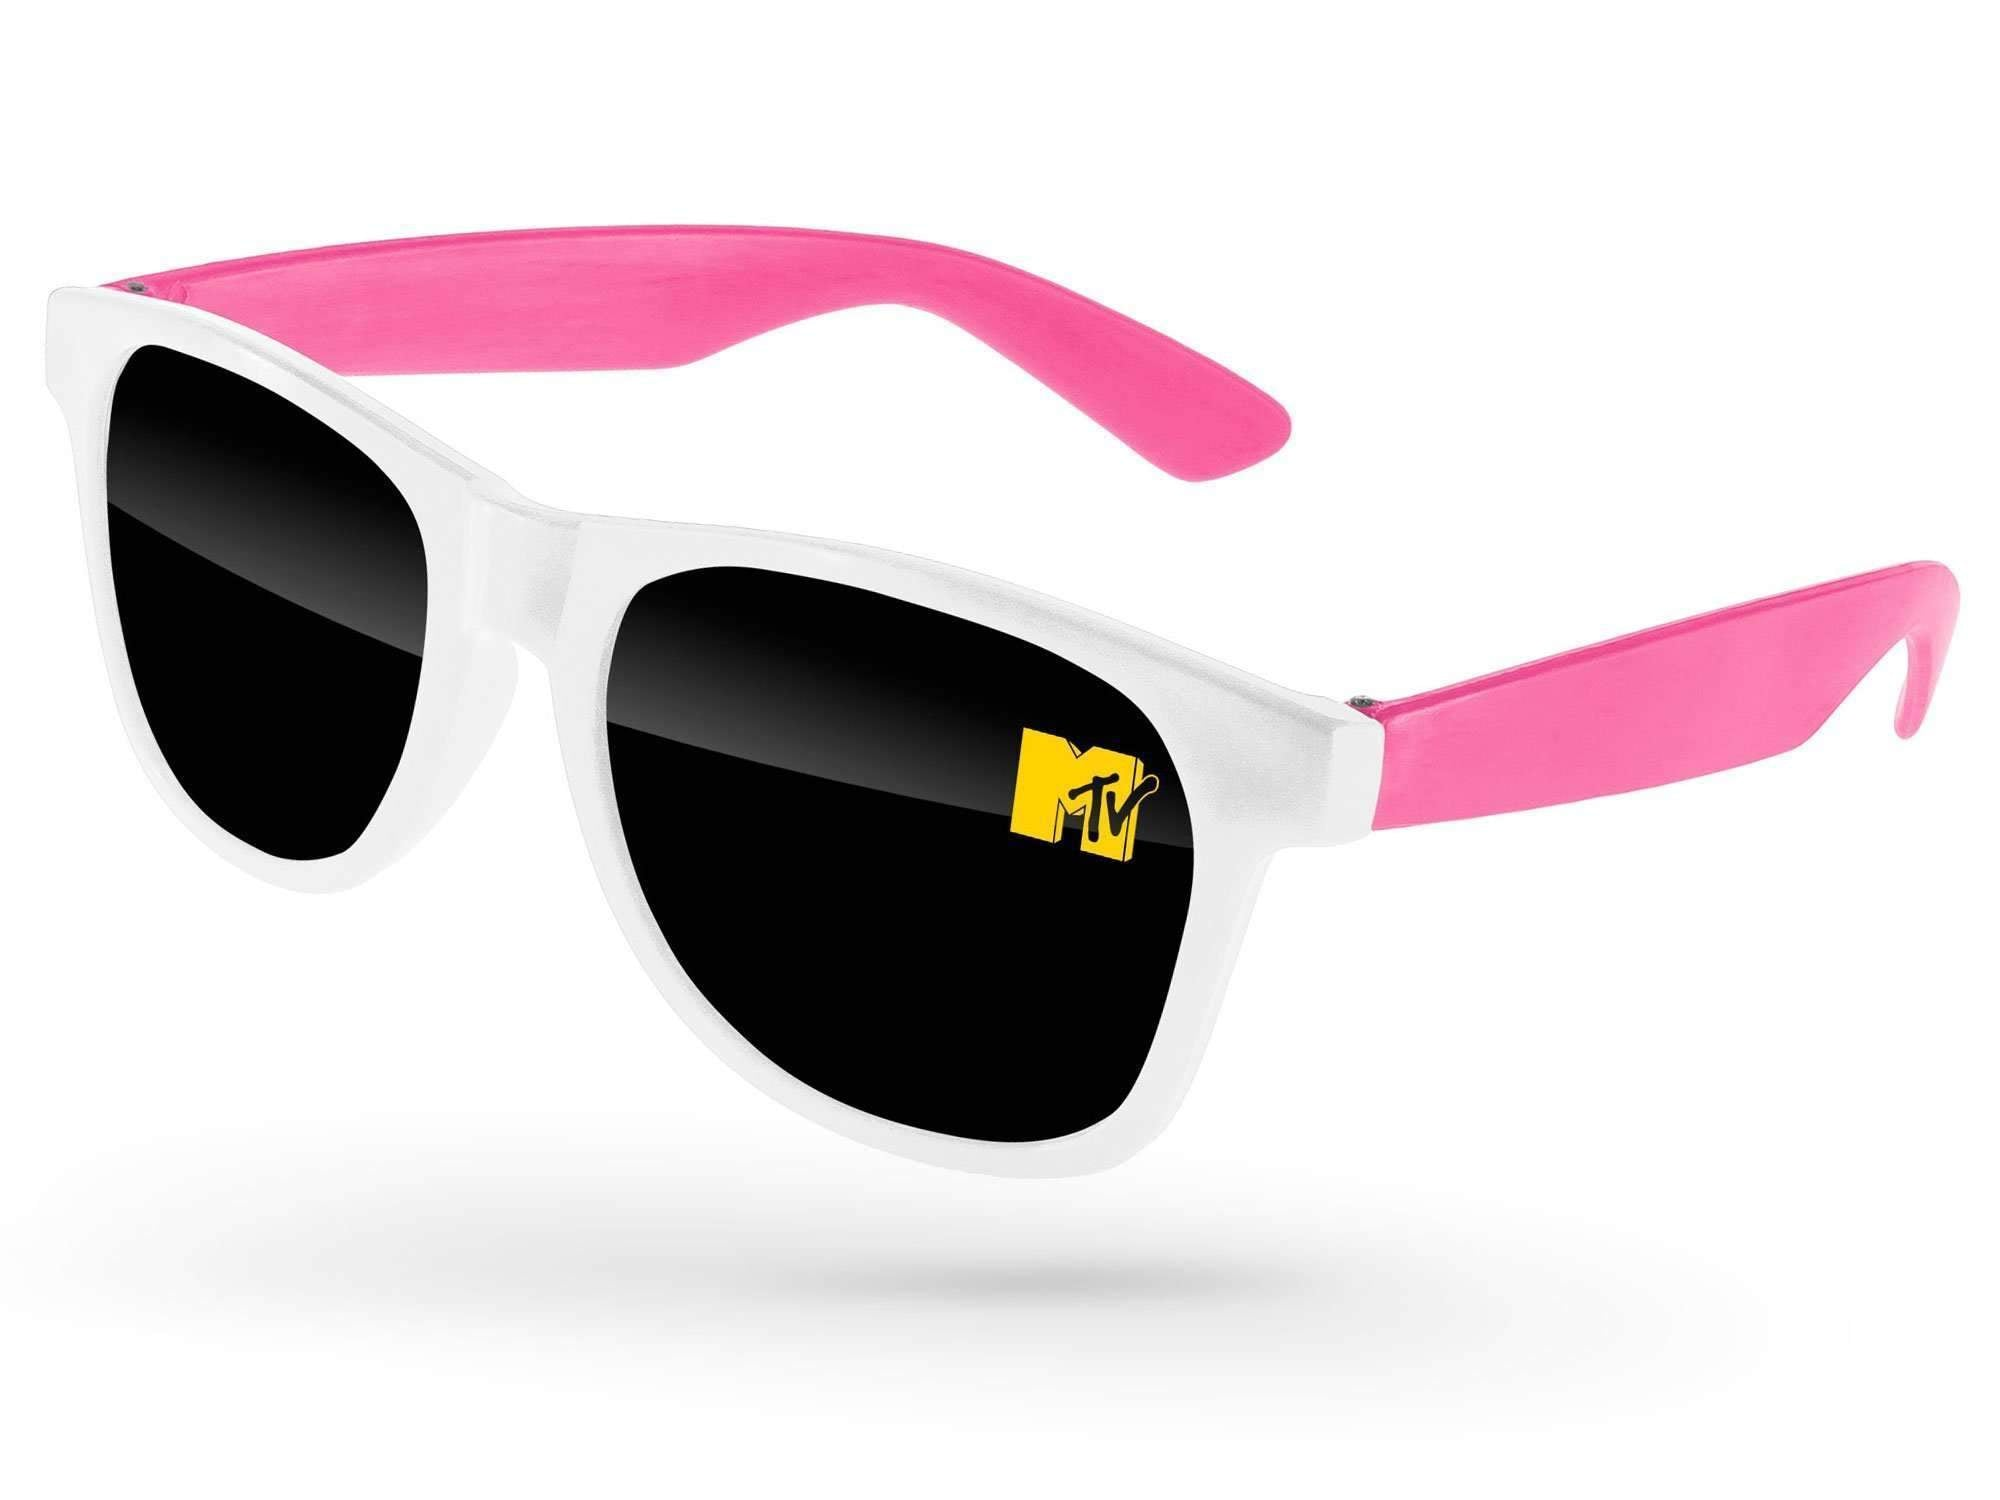 RD502-P - 2-tone Value Retro Promotional Sunglasses w/ 1-color lens imprint